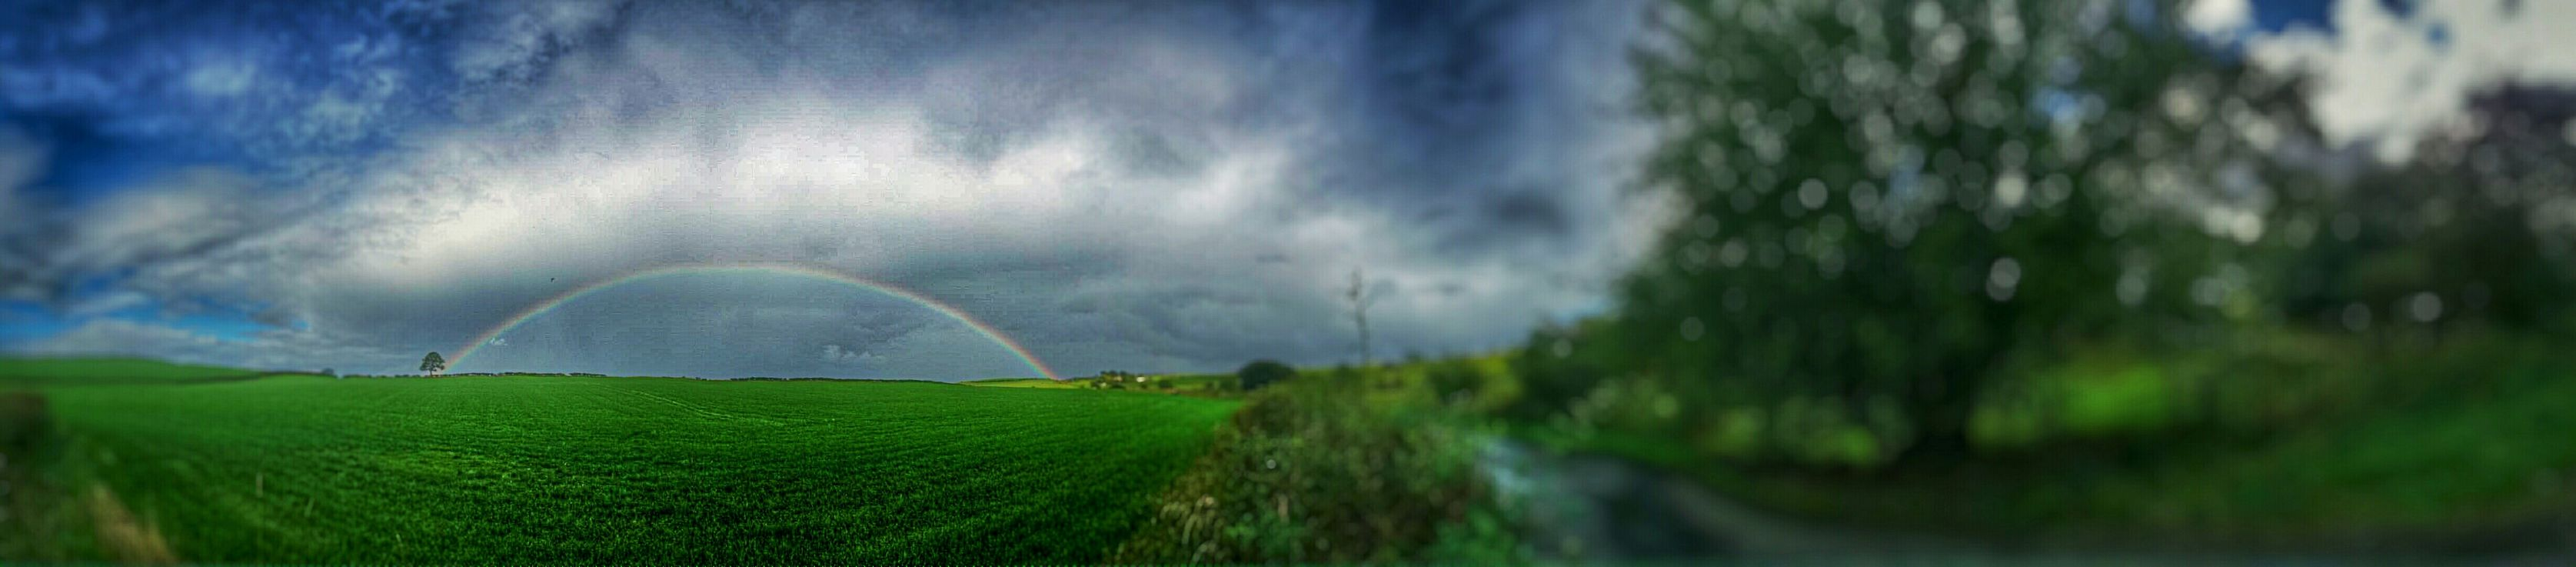 Only a phone panoramic but you get the picture.... Rainbow EyeEm Best Shots Eye4photography  Eyem Gallery EyeEm Gallery Sky_collection Eyeemcolours The Natural World Eyeem_allshots PhonePhotography